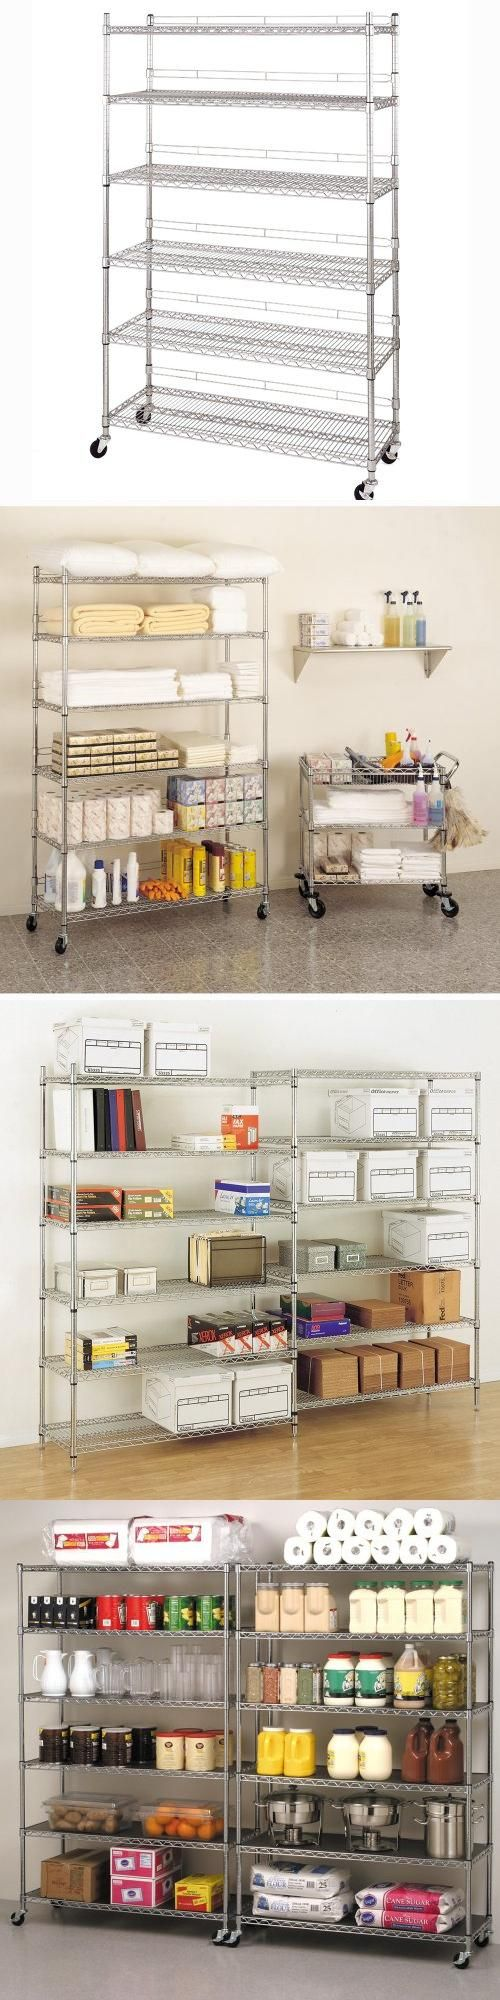 Seville Classics WEB189 6-Shelf Wire Shelving System with Casters ...